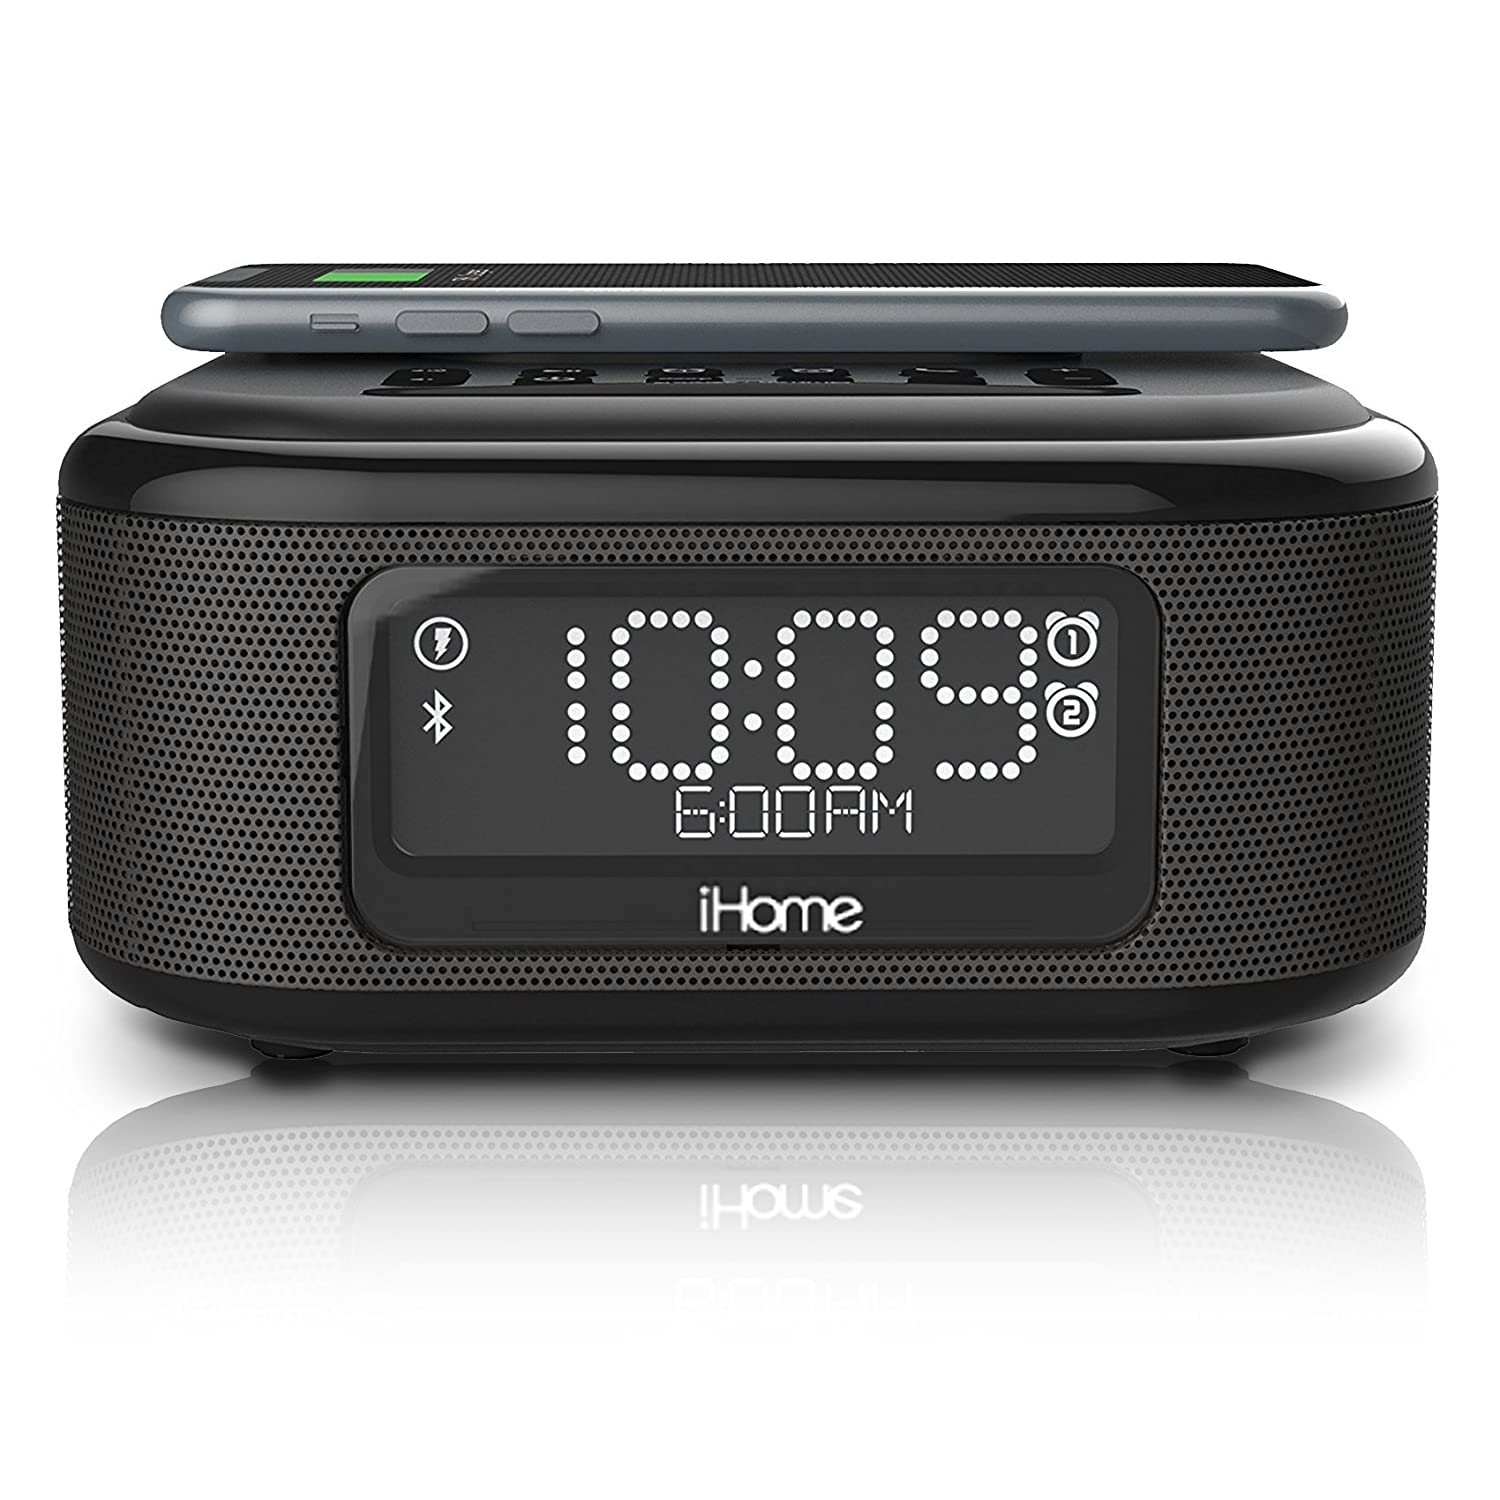 iHome iBTW23 Alarm Clock Bluetooth Stereo with Lightning iPhone Qi Wireless Charging Dock Station for iPhone Xs, XS Max, XR, X, iPhone 8/7/6 Plus USB ...